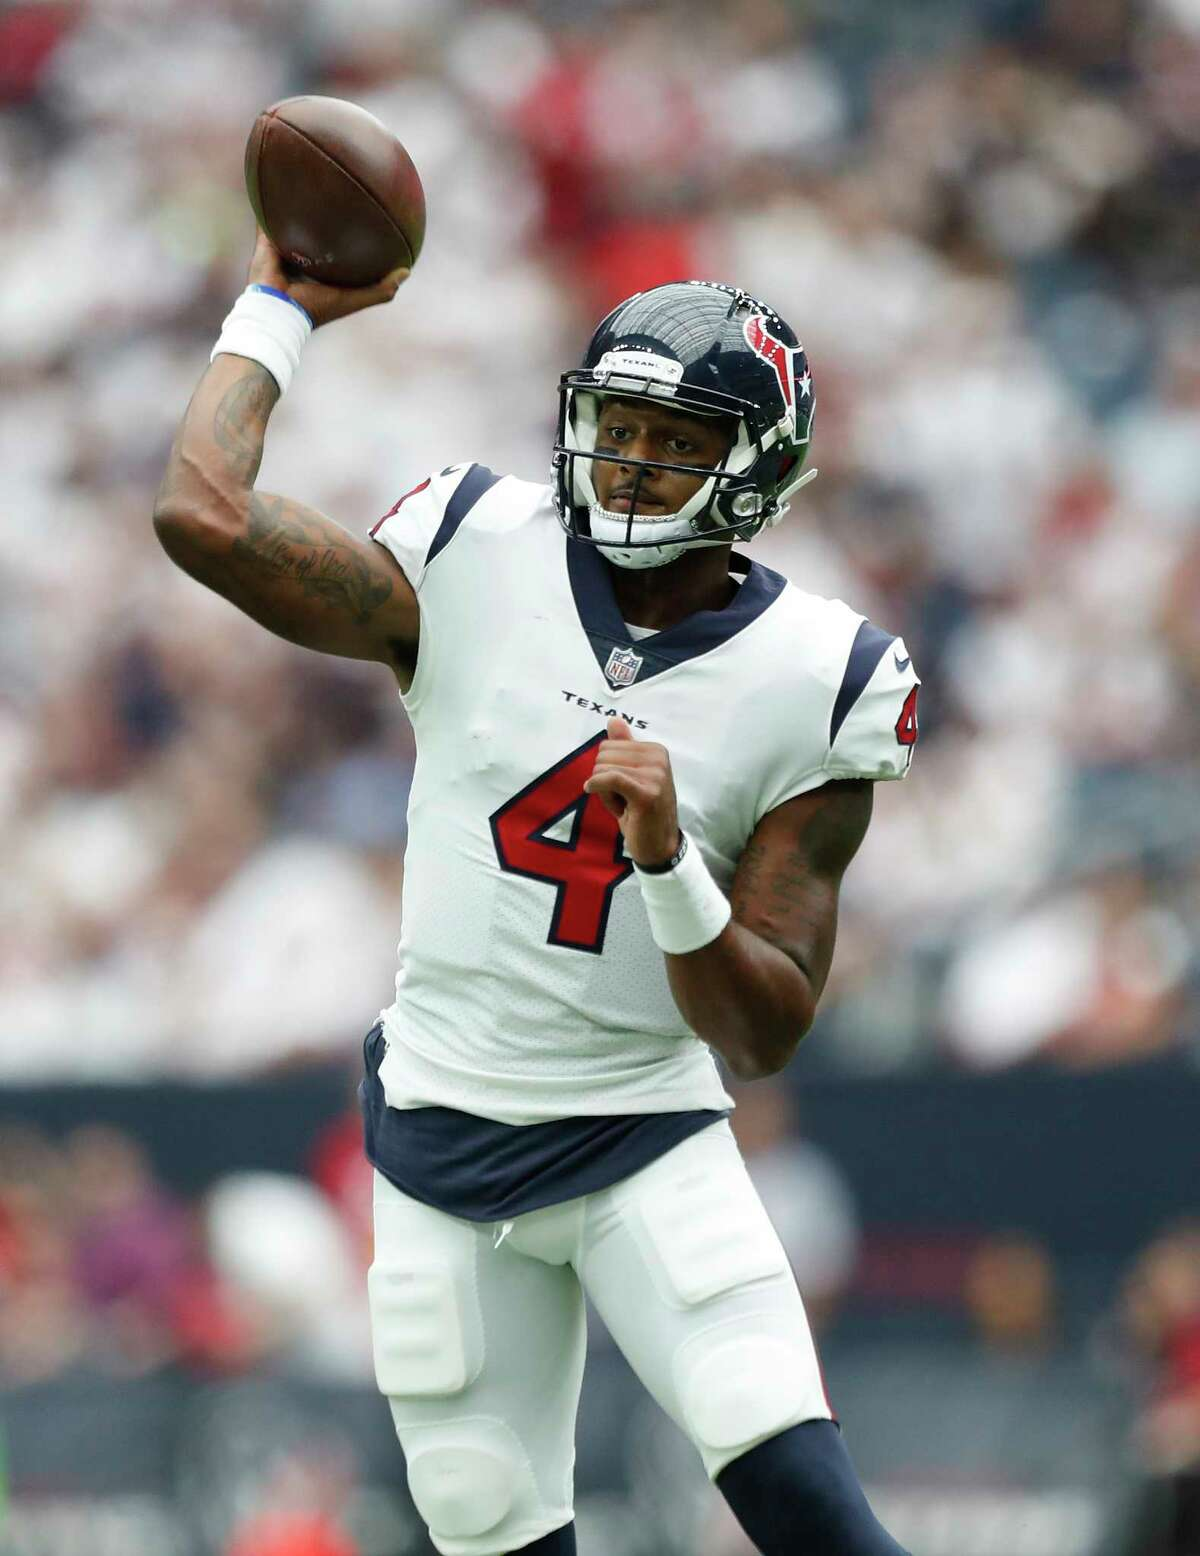 Rookie Deshaun Watson has shown he is capable of giving the Texans a shot to win since taking over for Tom Savage at quarterback in the second half of the season opener.